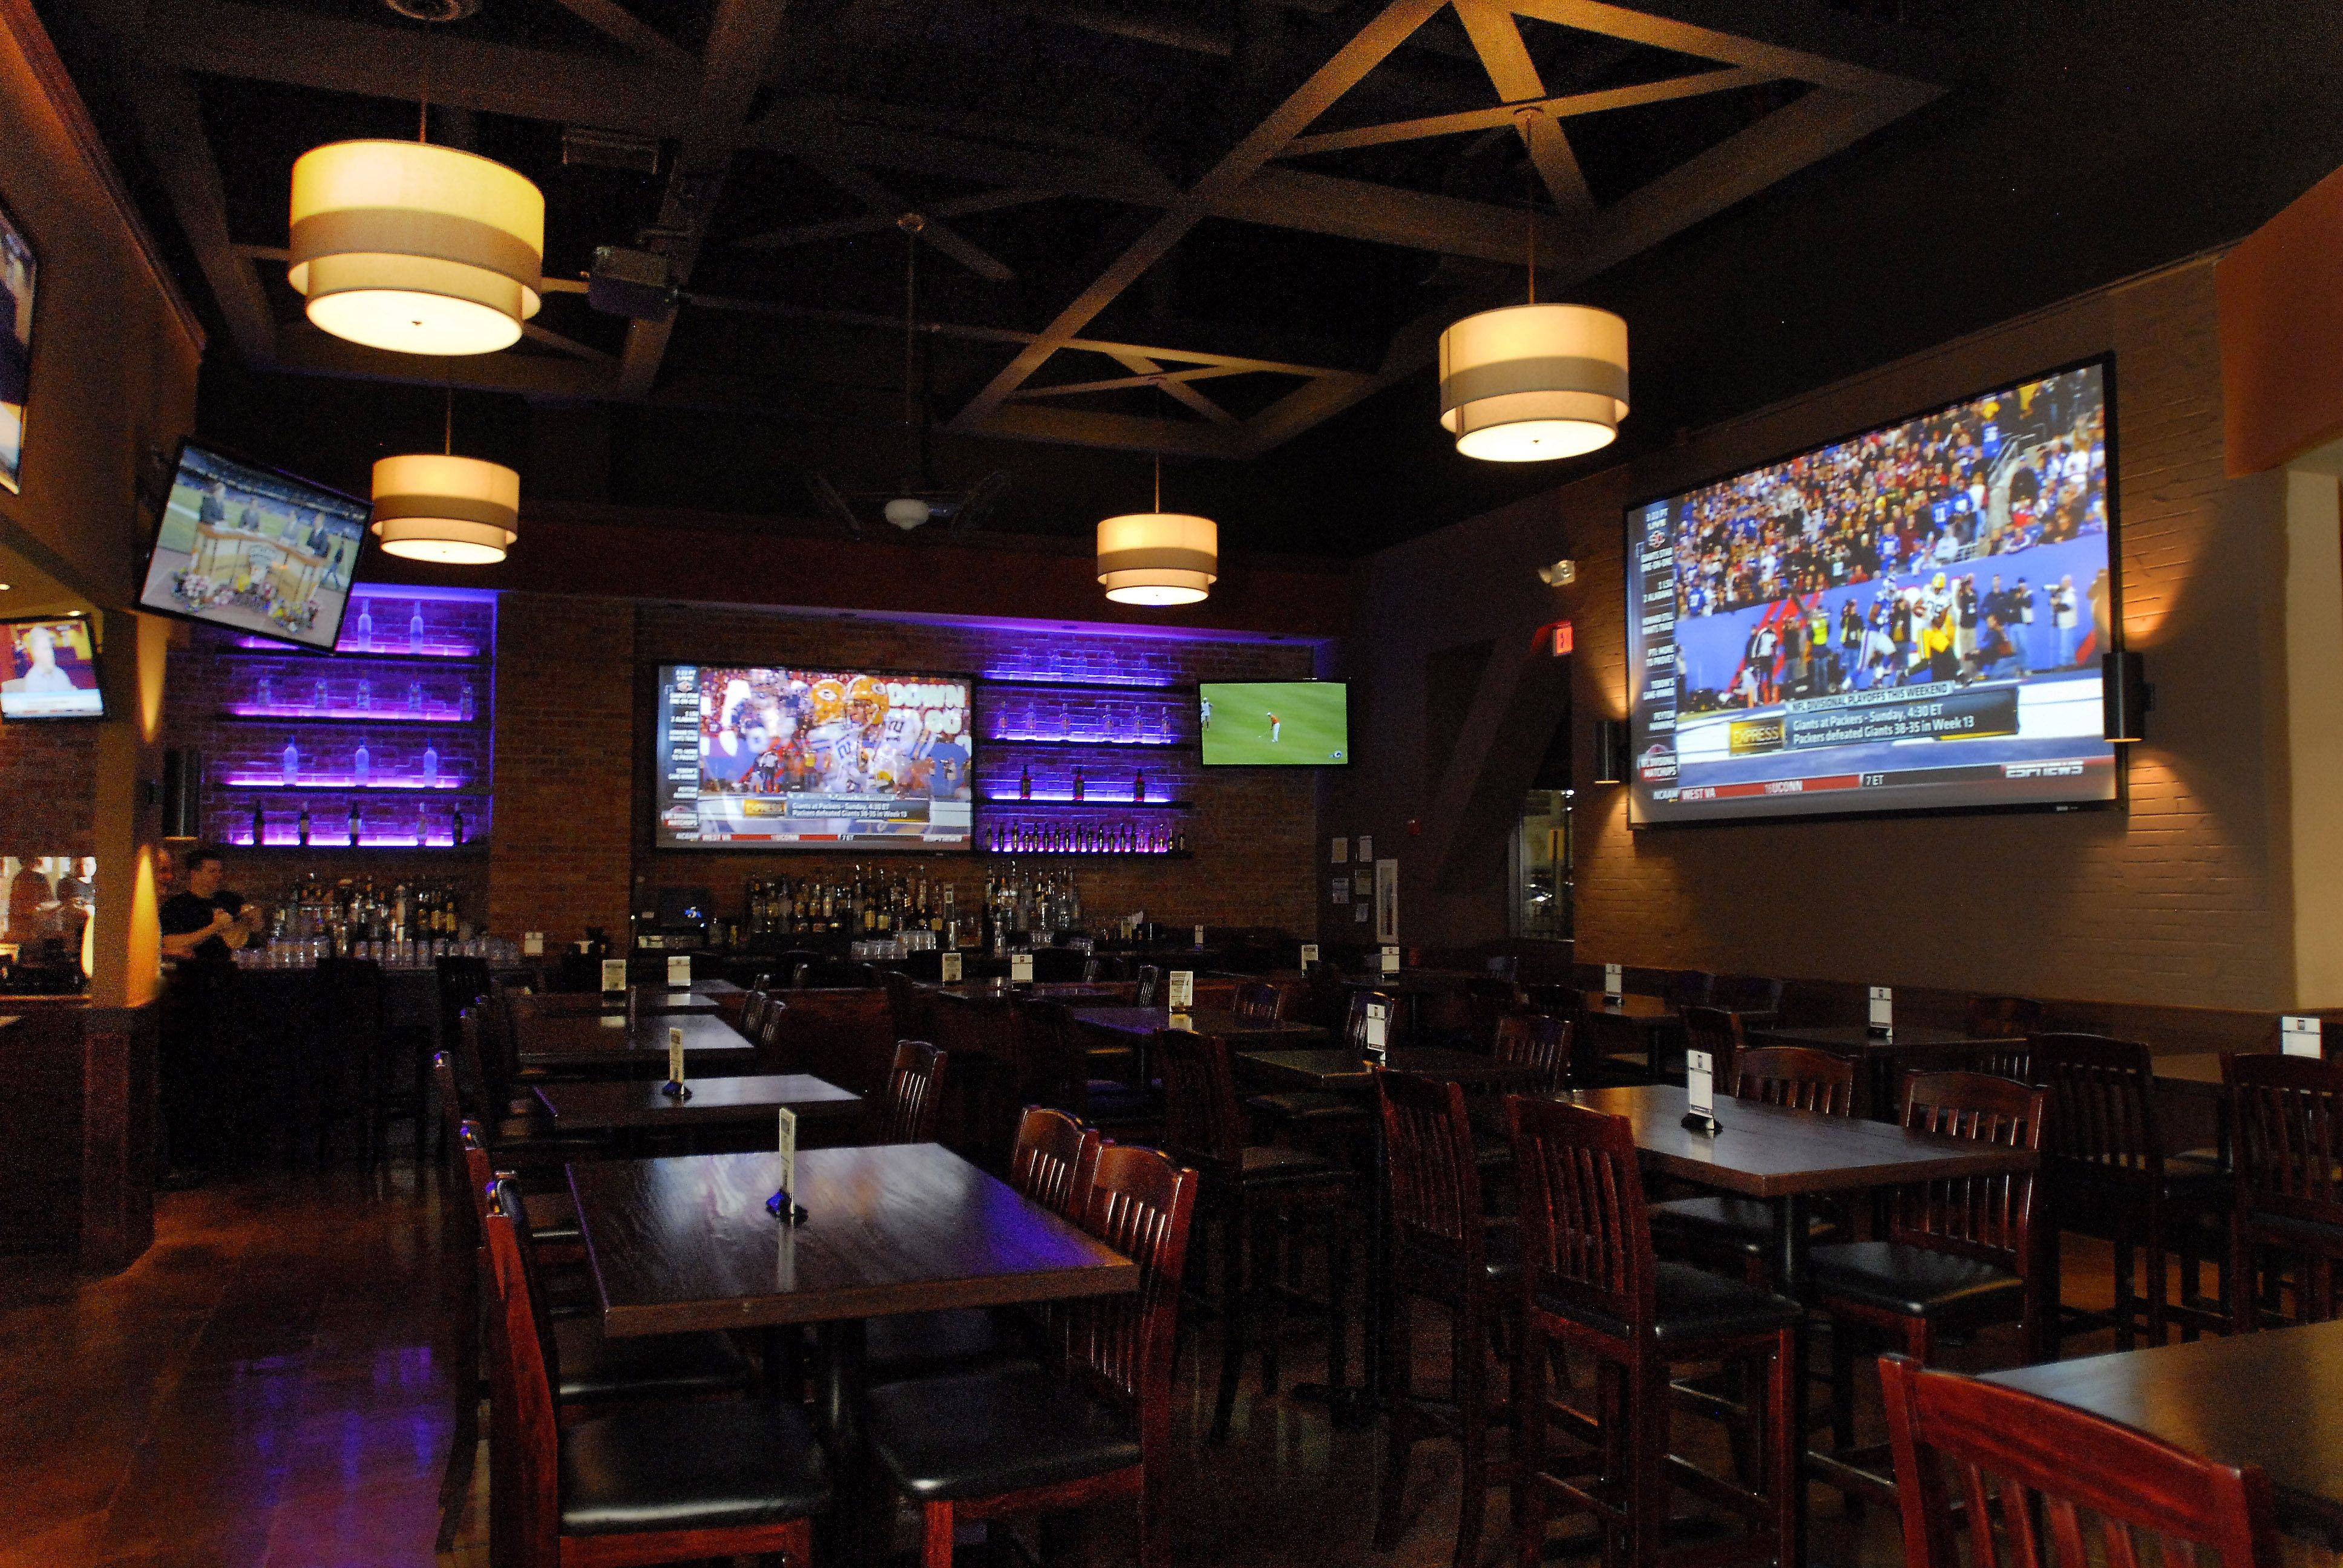 Screens of up to 160 inches provide ideal viewing at Wickets Bar & Grill in Schaumburg.